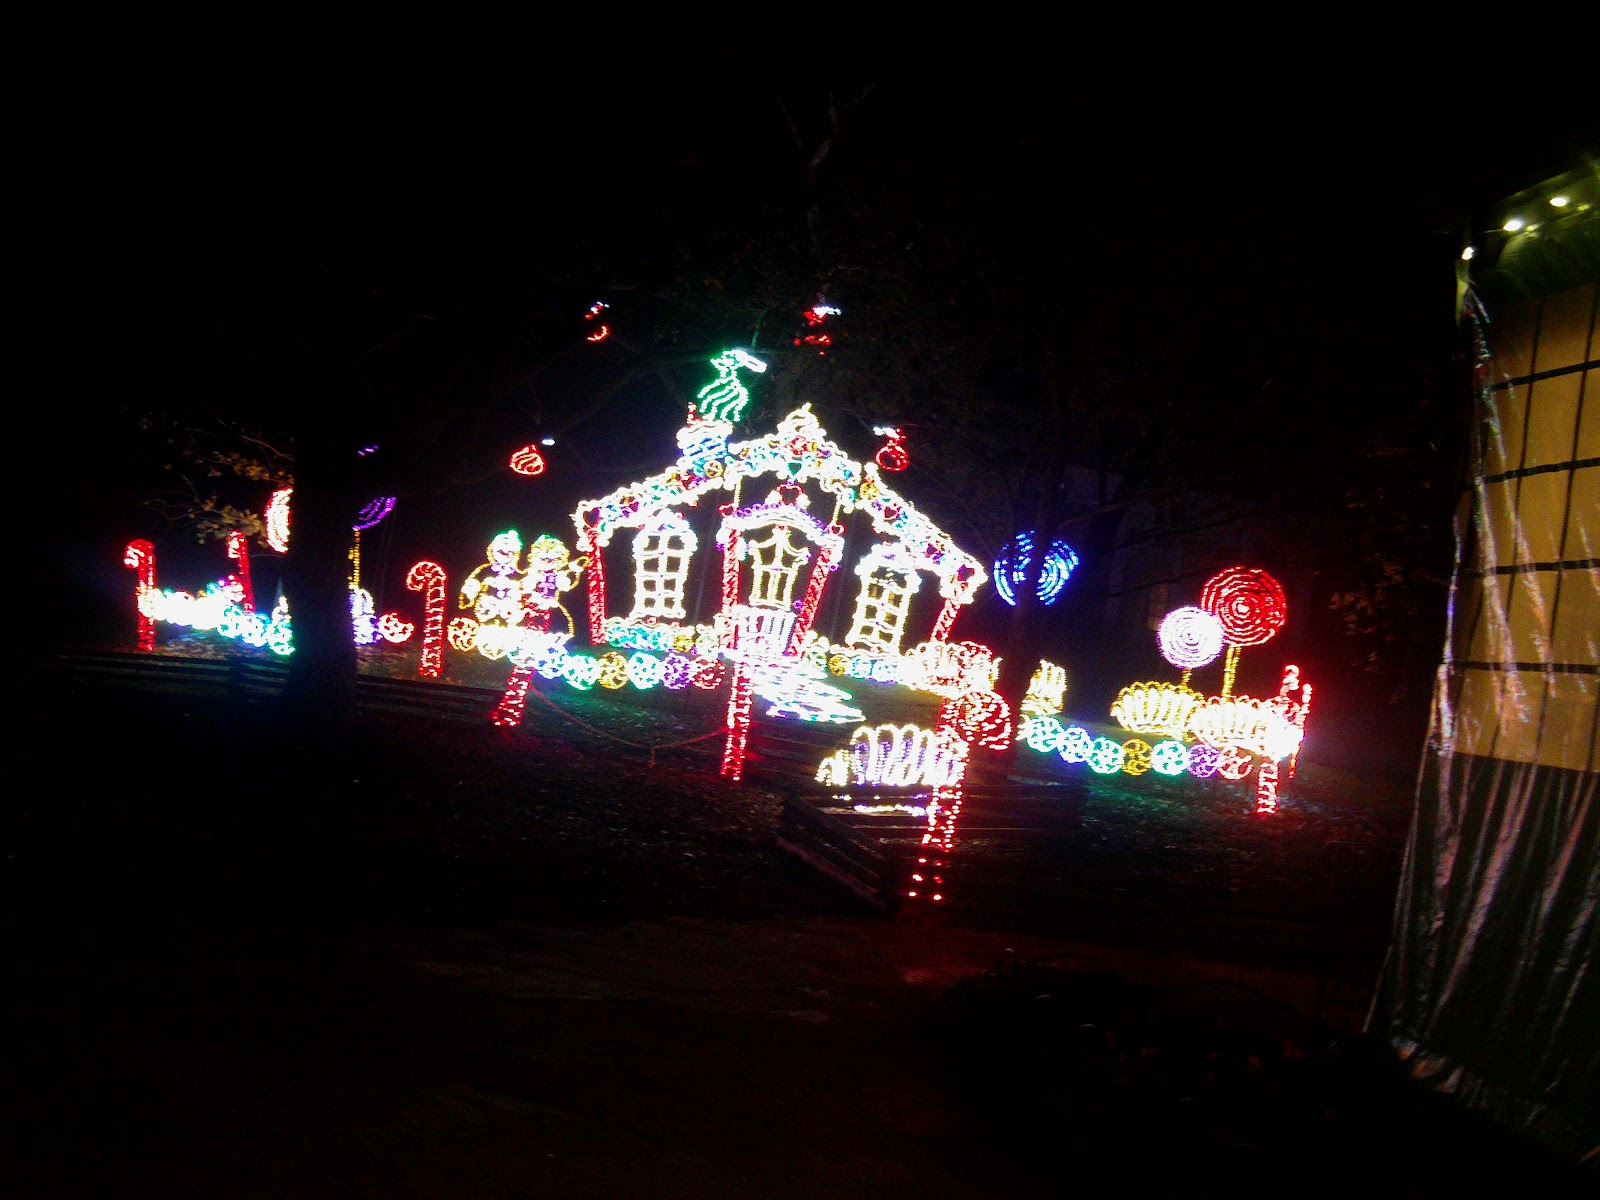 This chattanooga mommy saves enchanted garden of lights - Rock city enchanted garden of lights ...